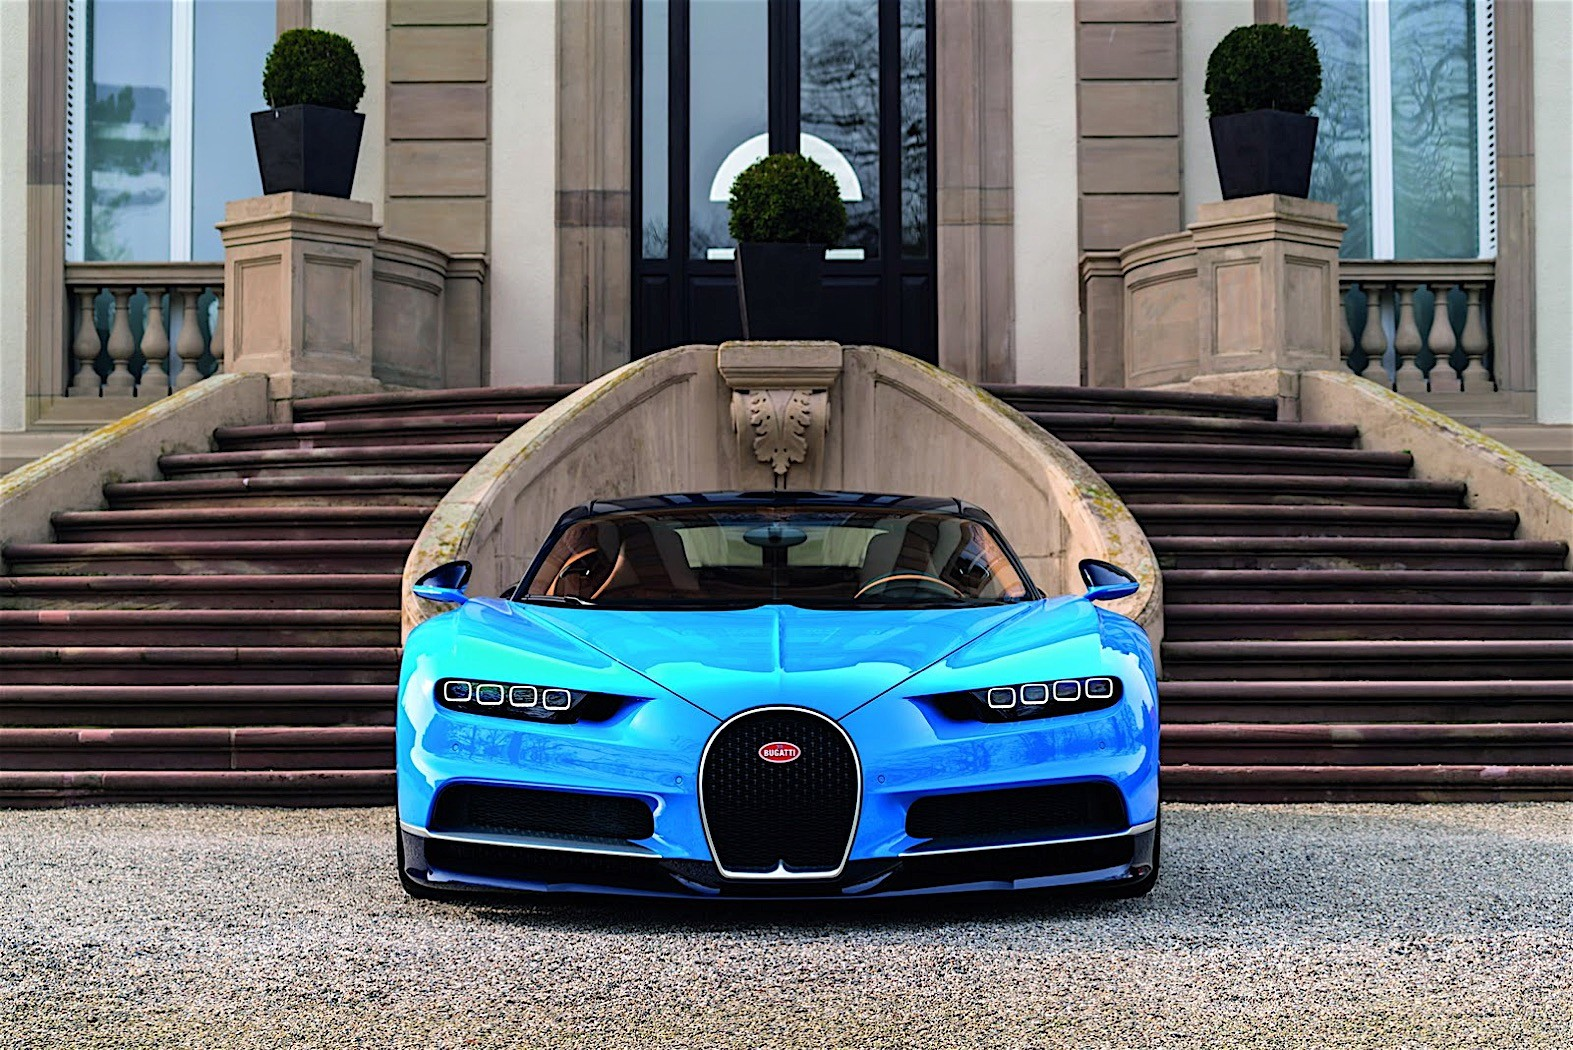 Is This Crashed Bugatti Chiron a Test Car? - autoevolution